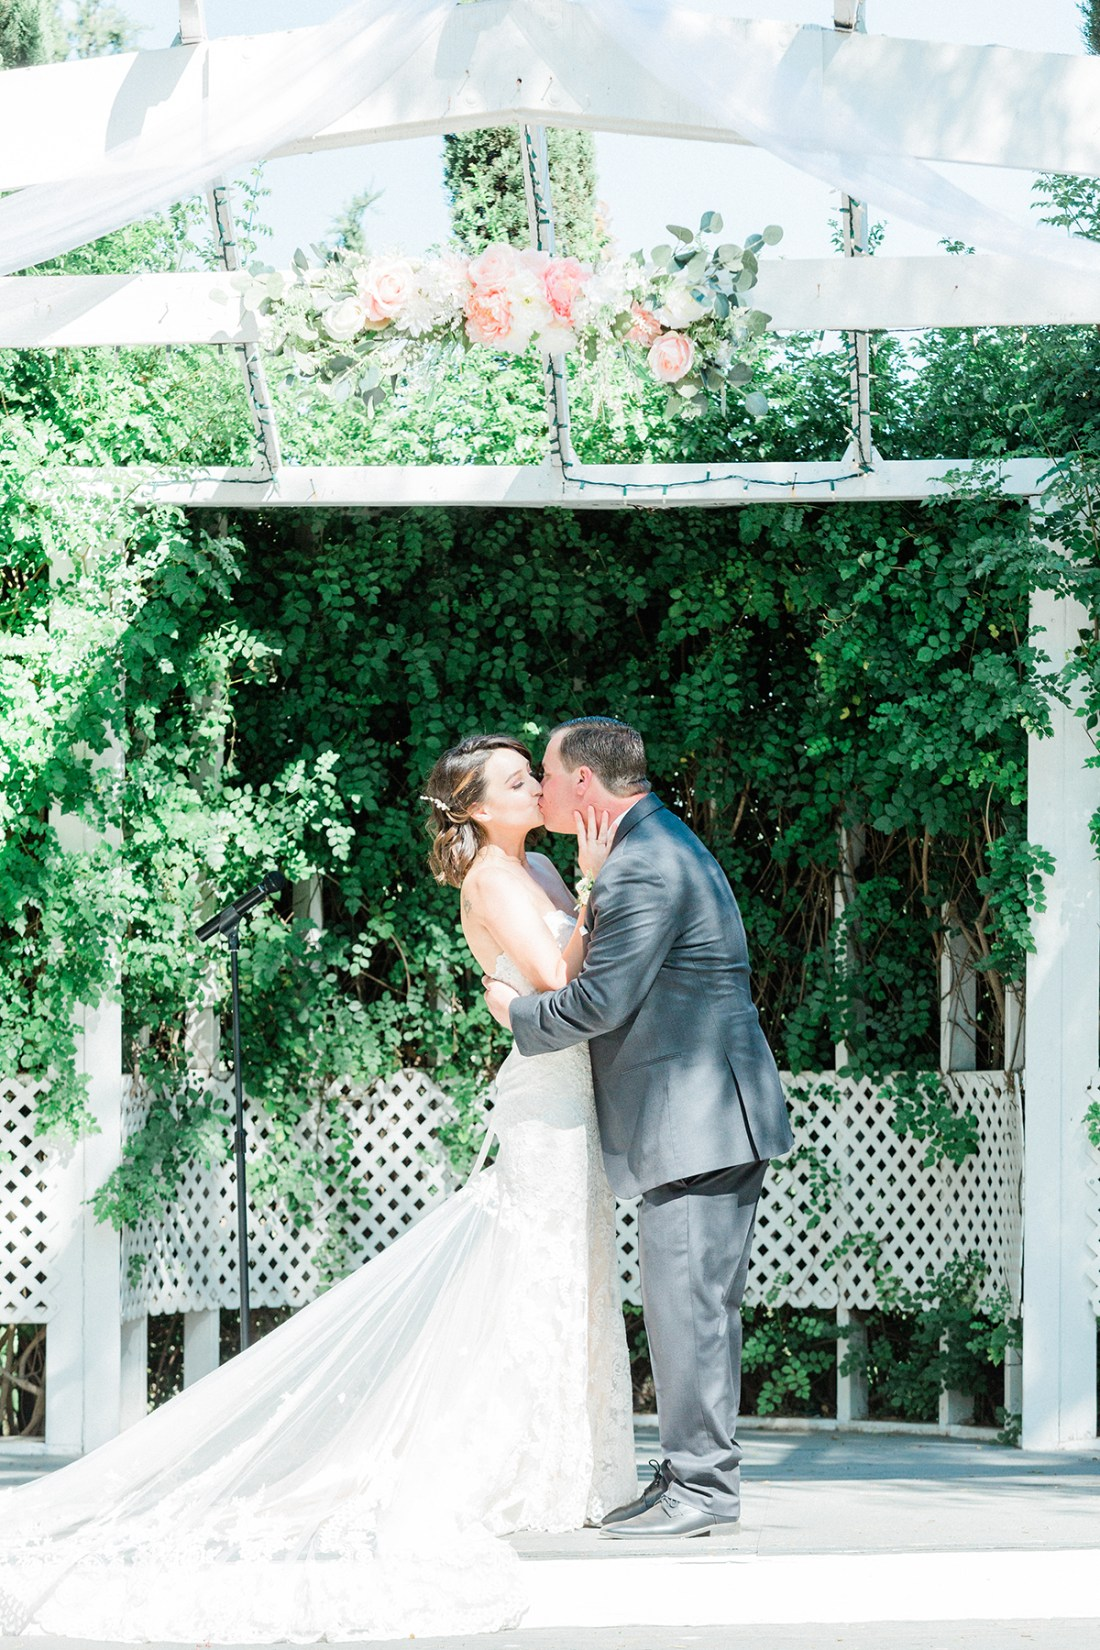 Our Wedding Ceremony- First Kiss. | A Good Hue